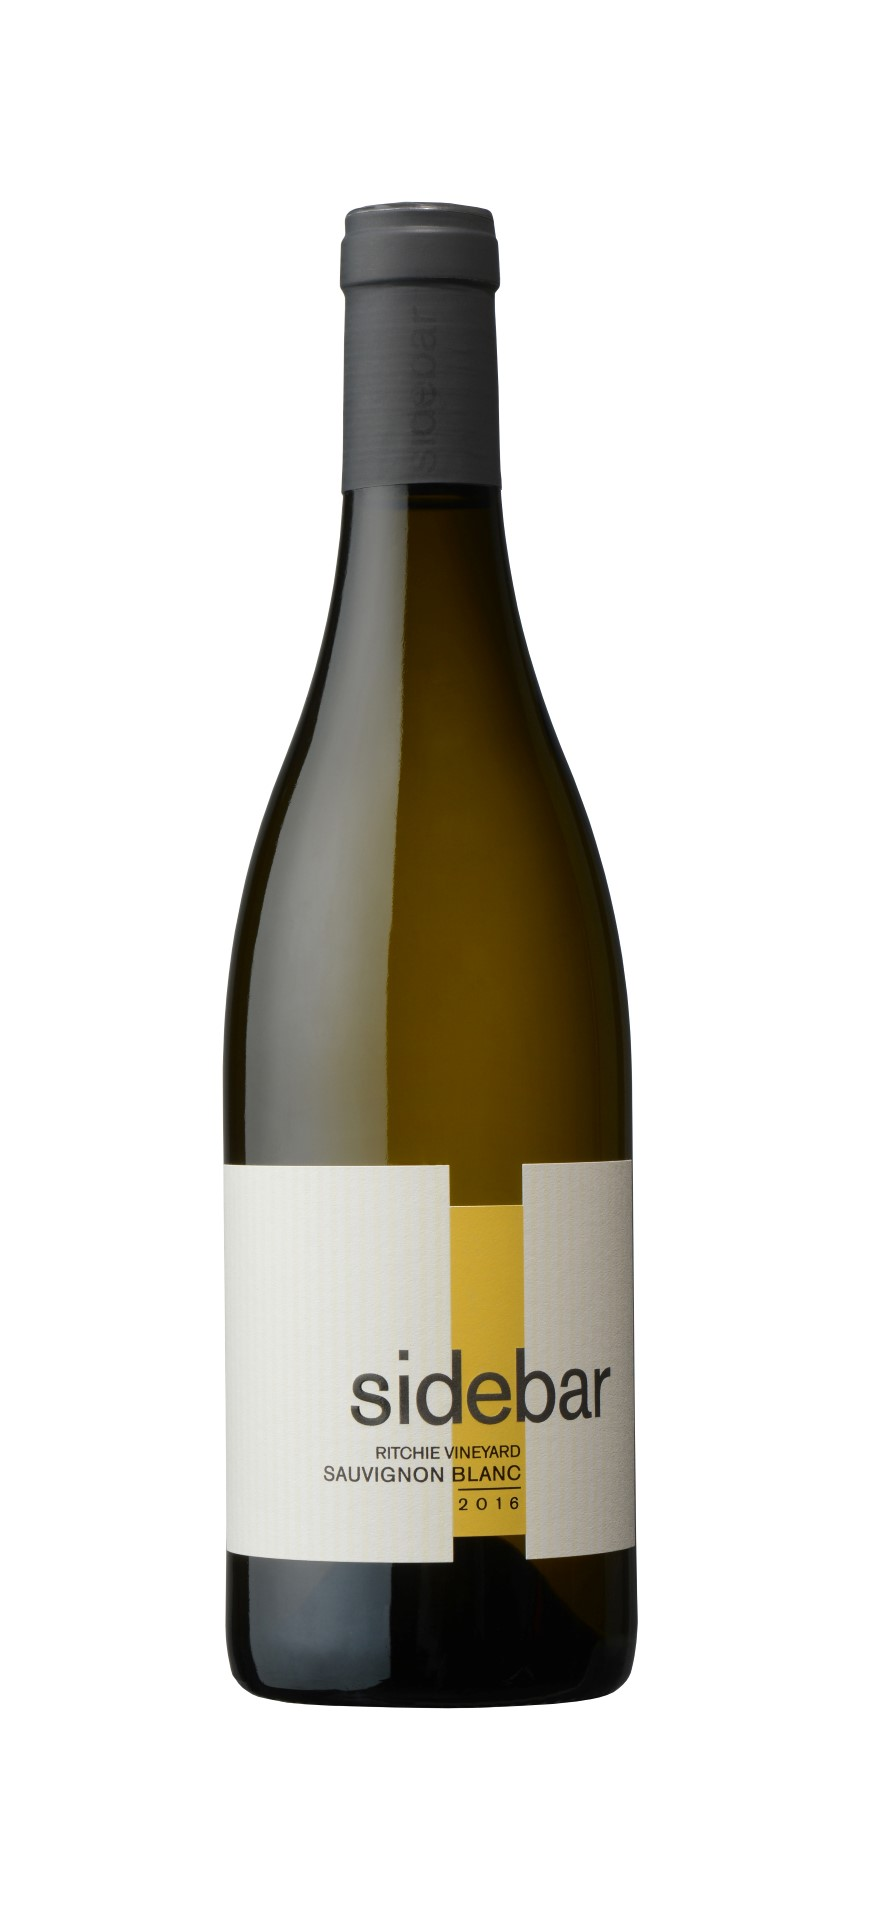 2016 Sidebar Sauvignon Blanc Russian River Valley Ritchie Vineyard